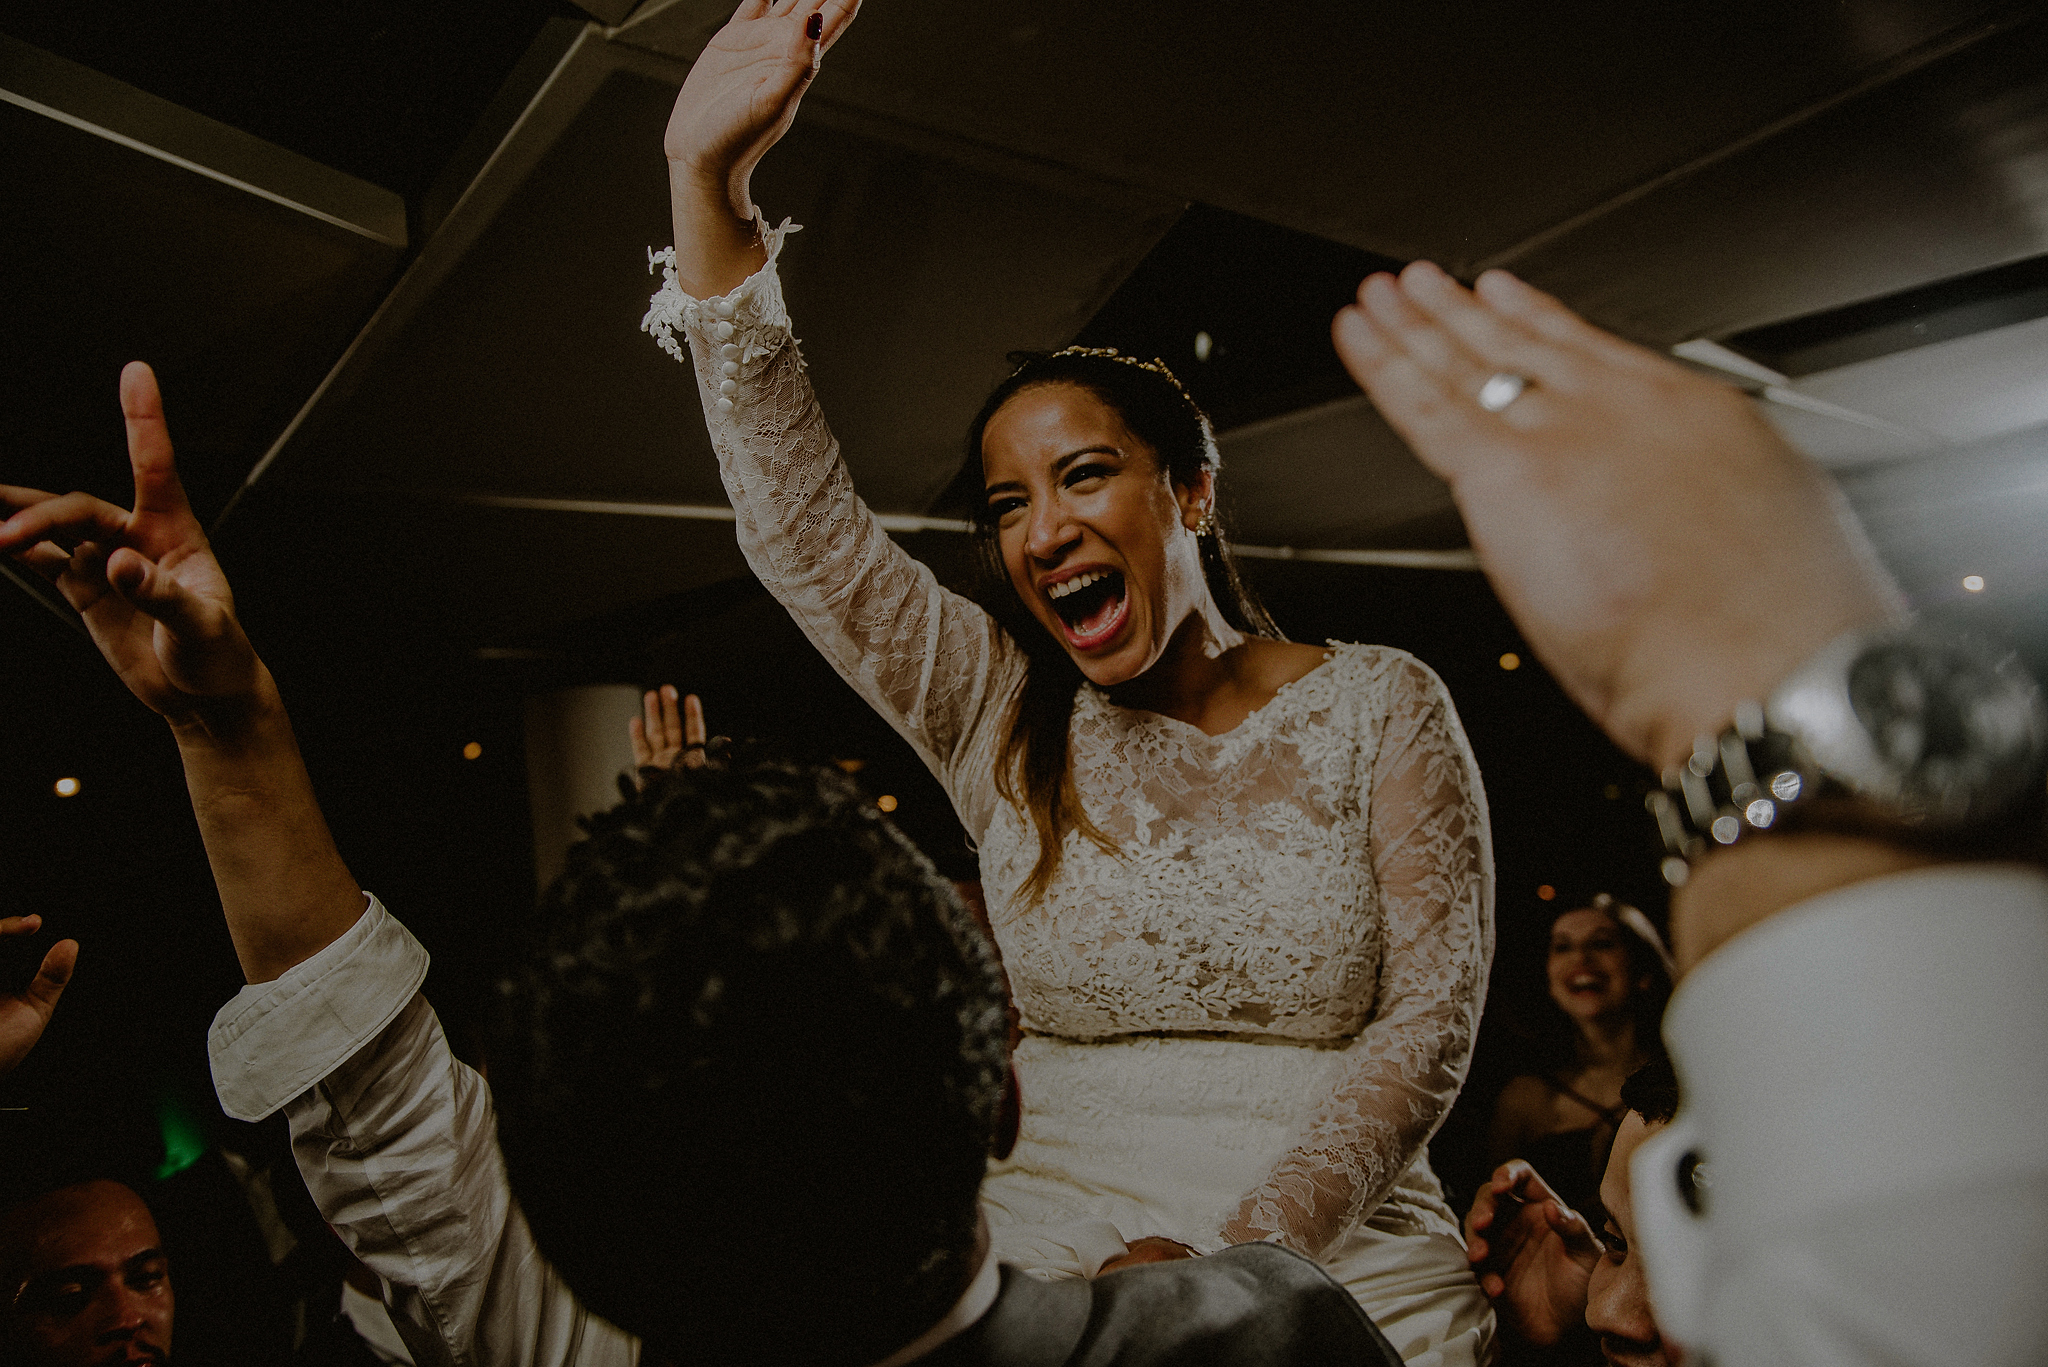 Dominican wedding photos